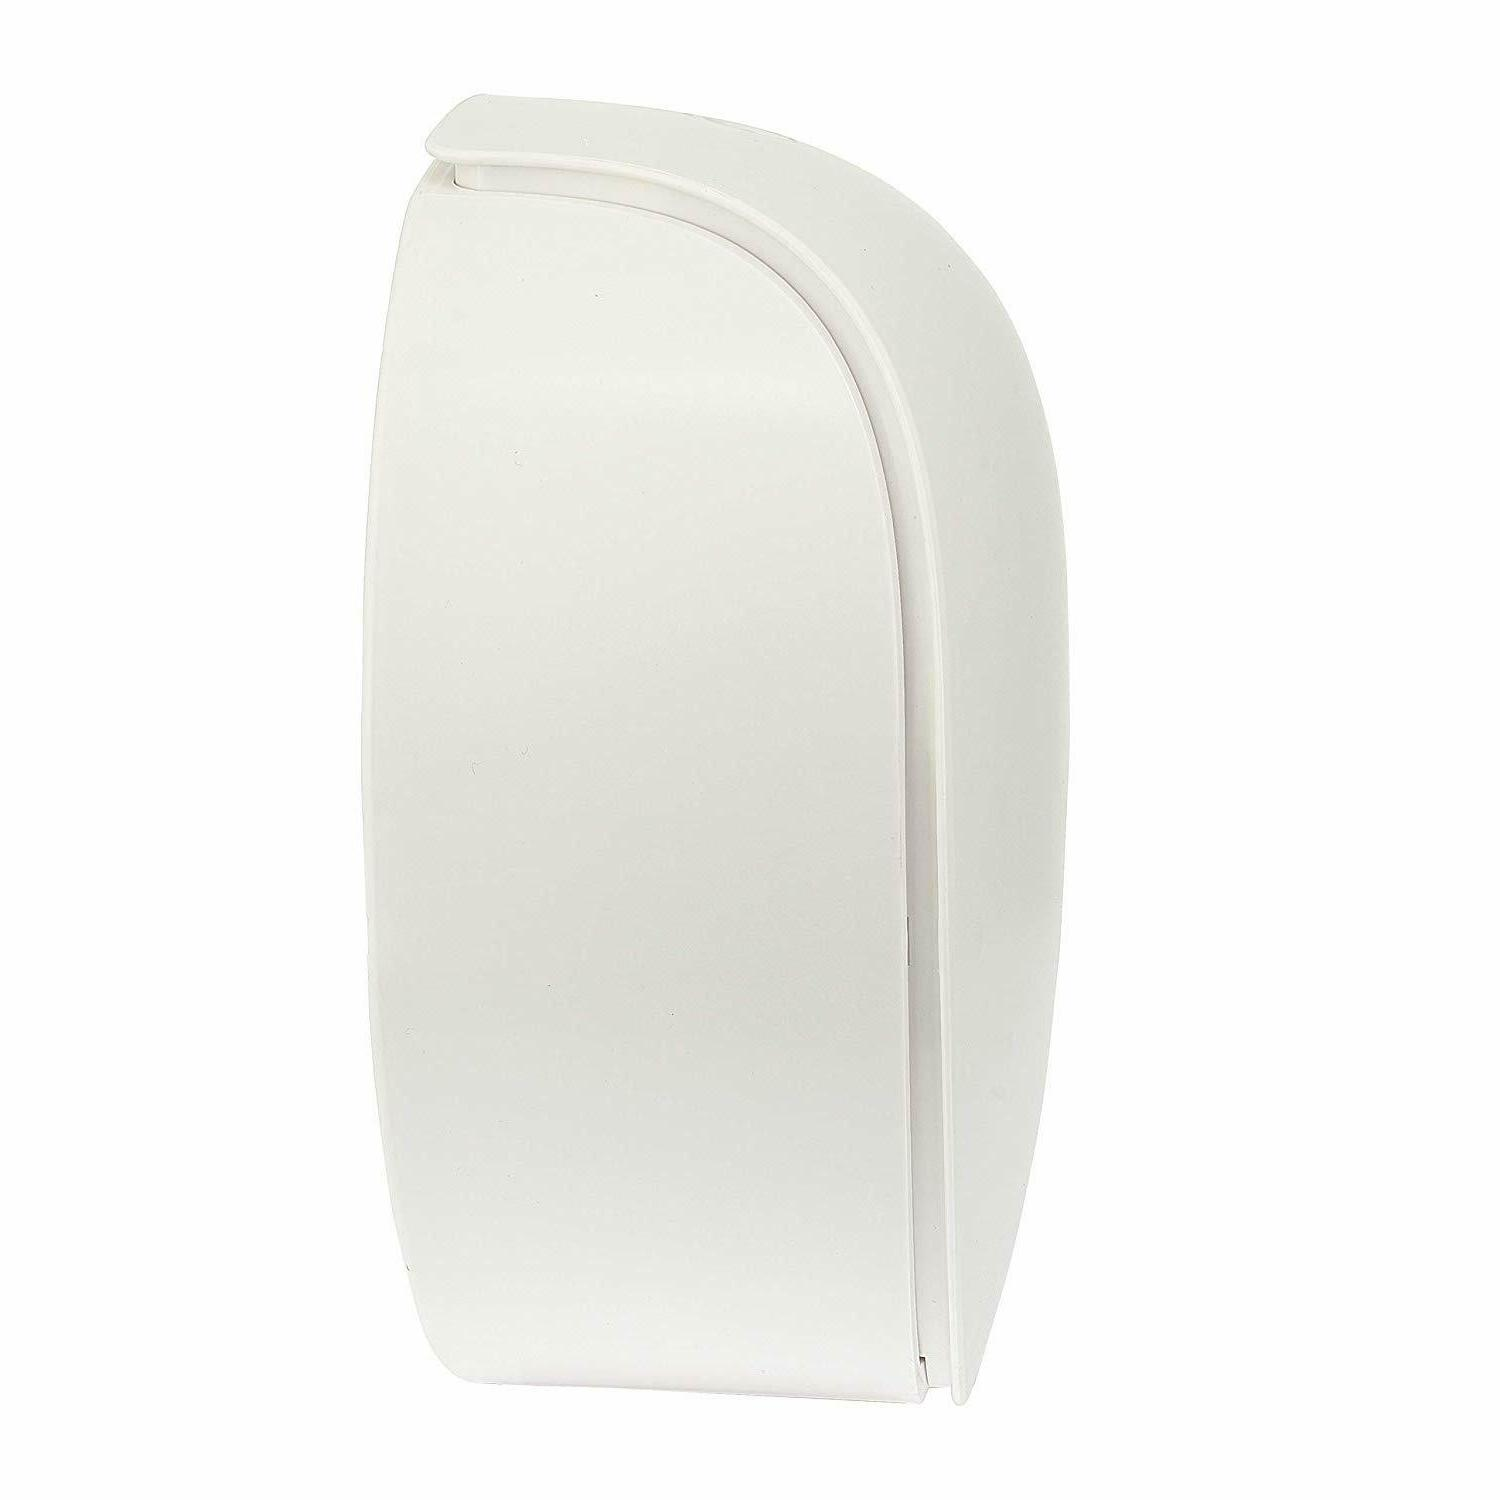 Jumbo Roll Bath Tissue Dispenser Toilet